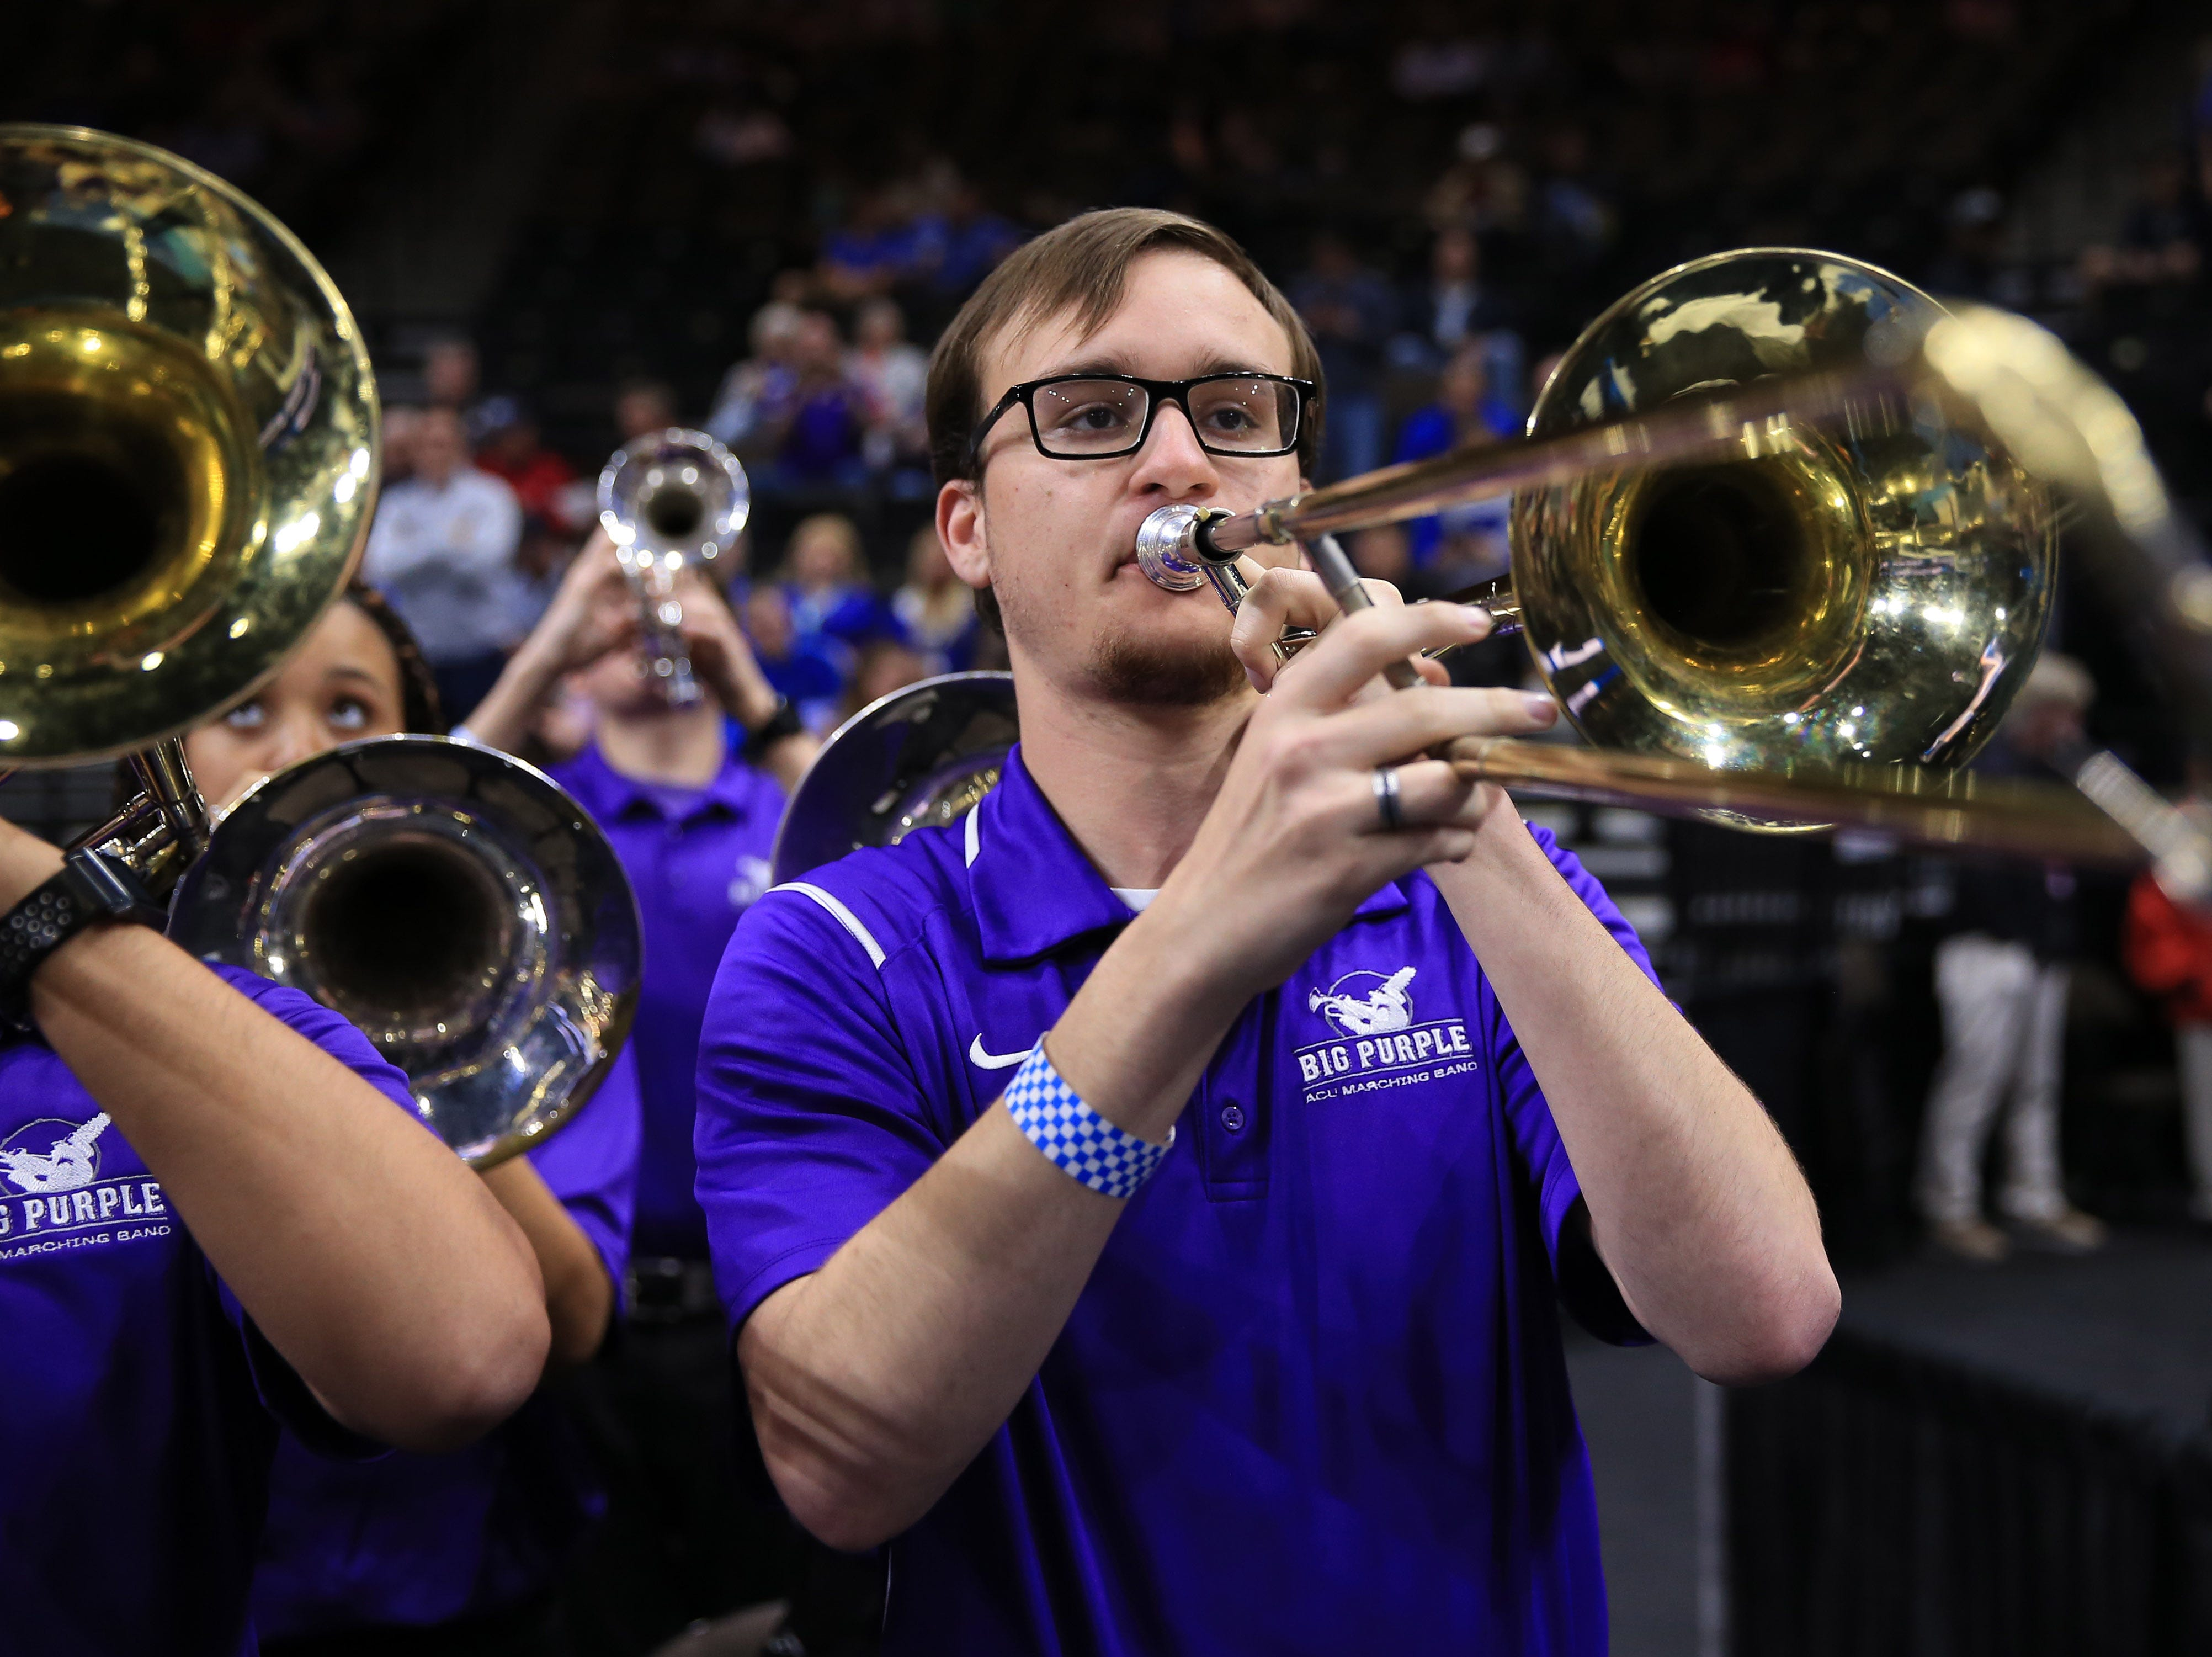 Mar 21, 2019; Jacksonville, FL, USA; The Abilene Christian Wildcats band preforms prior to the first round of the 2019 NCAA Tournament against the Kentucky Wildcats at Jacksonville Veterans Memorial Arena. Mandatory Credit: Matt Stamey-USA TODAY Sports